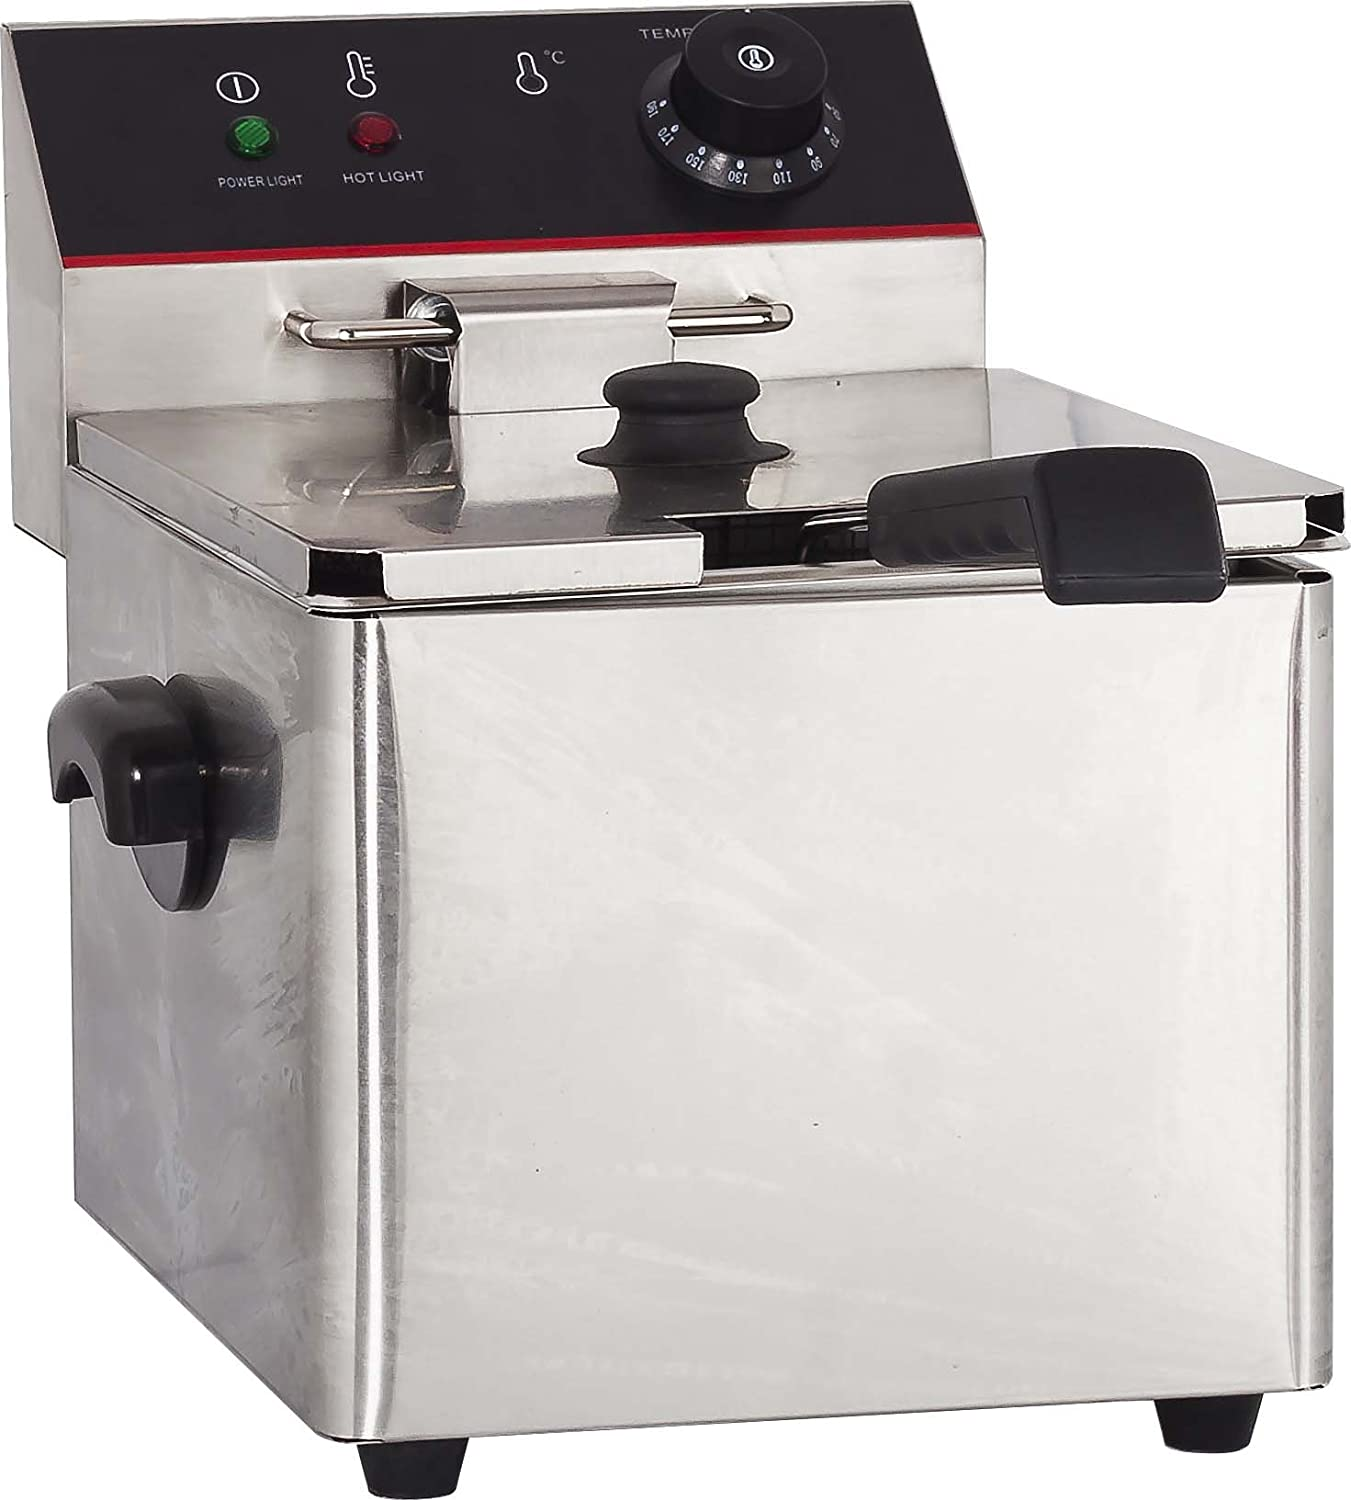 Amazoncom Hakka 8L Commercial Stainless Steel Deep Fryers Electric